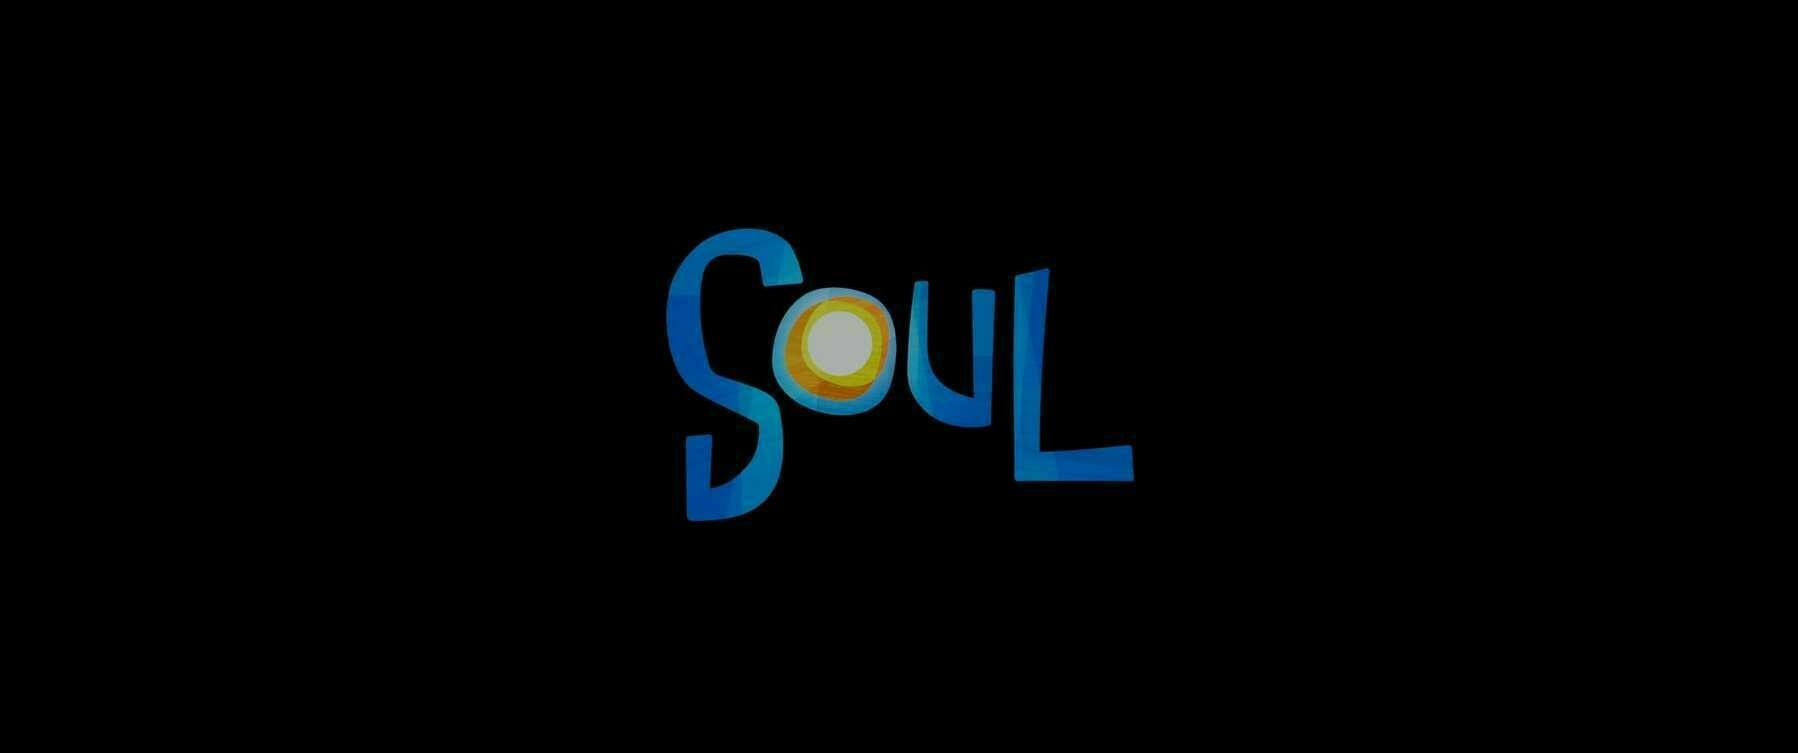 The title card for the film, Soul.